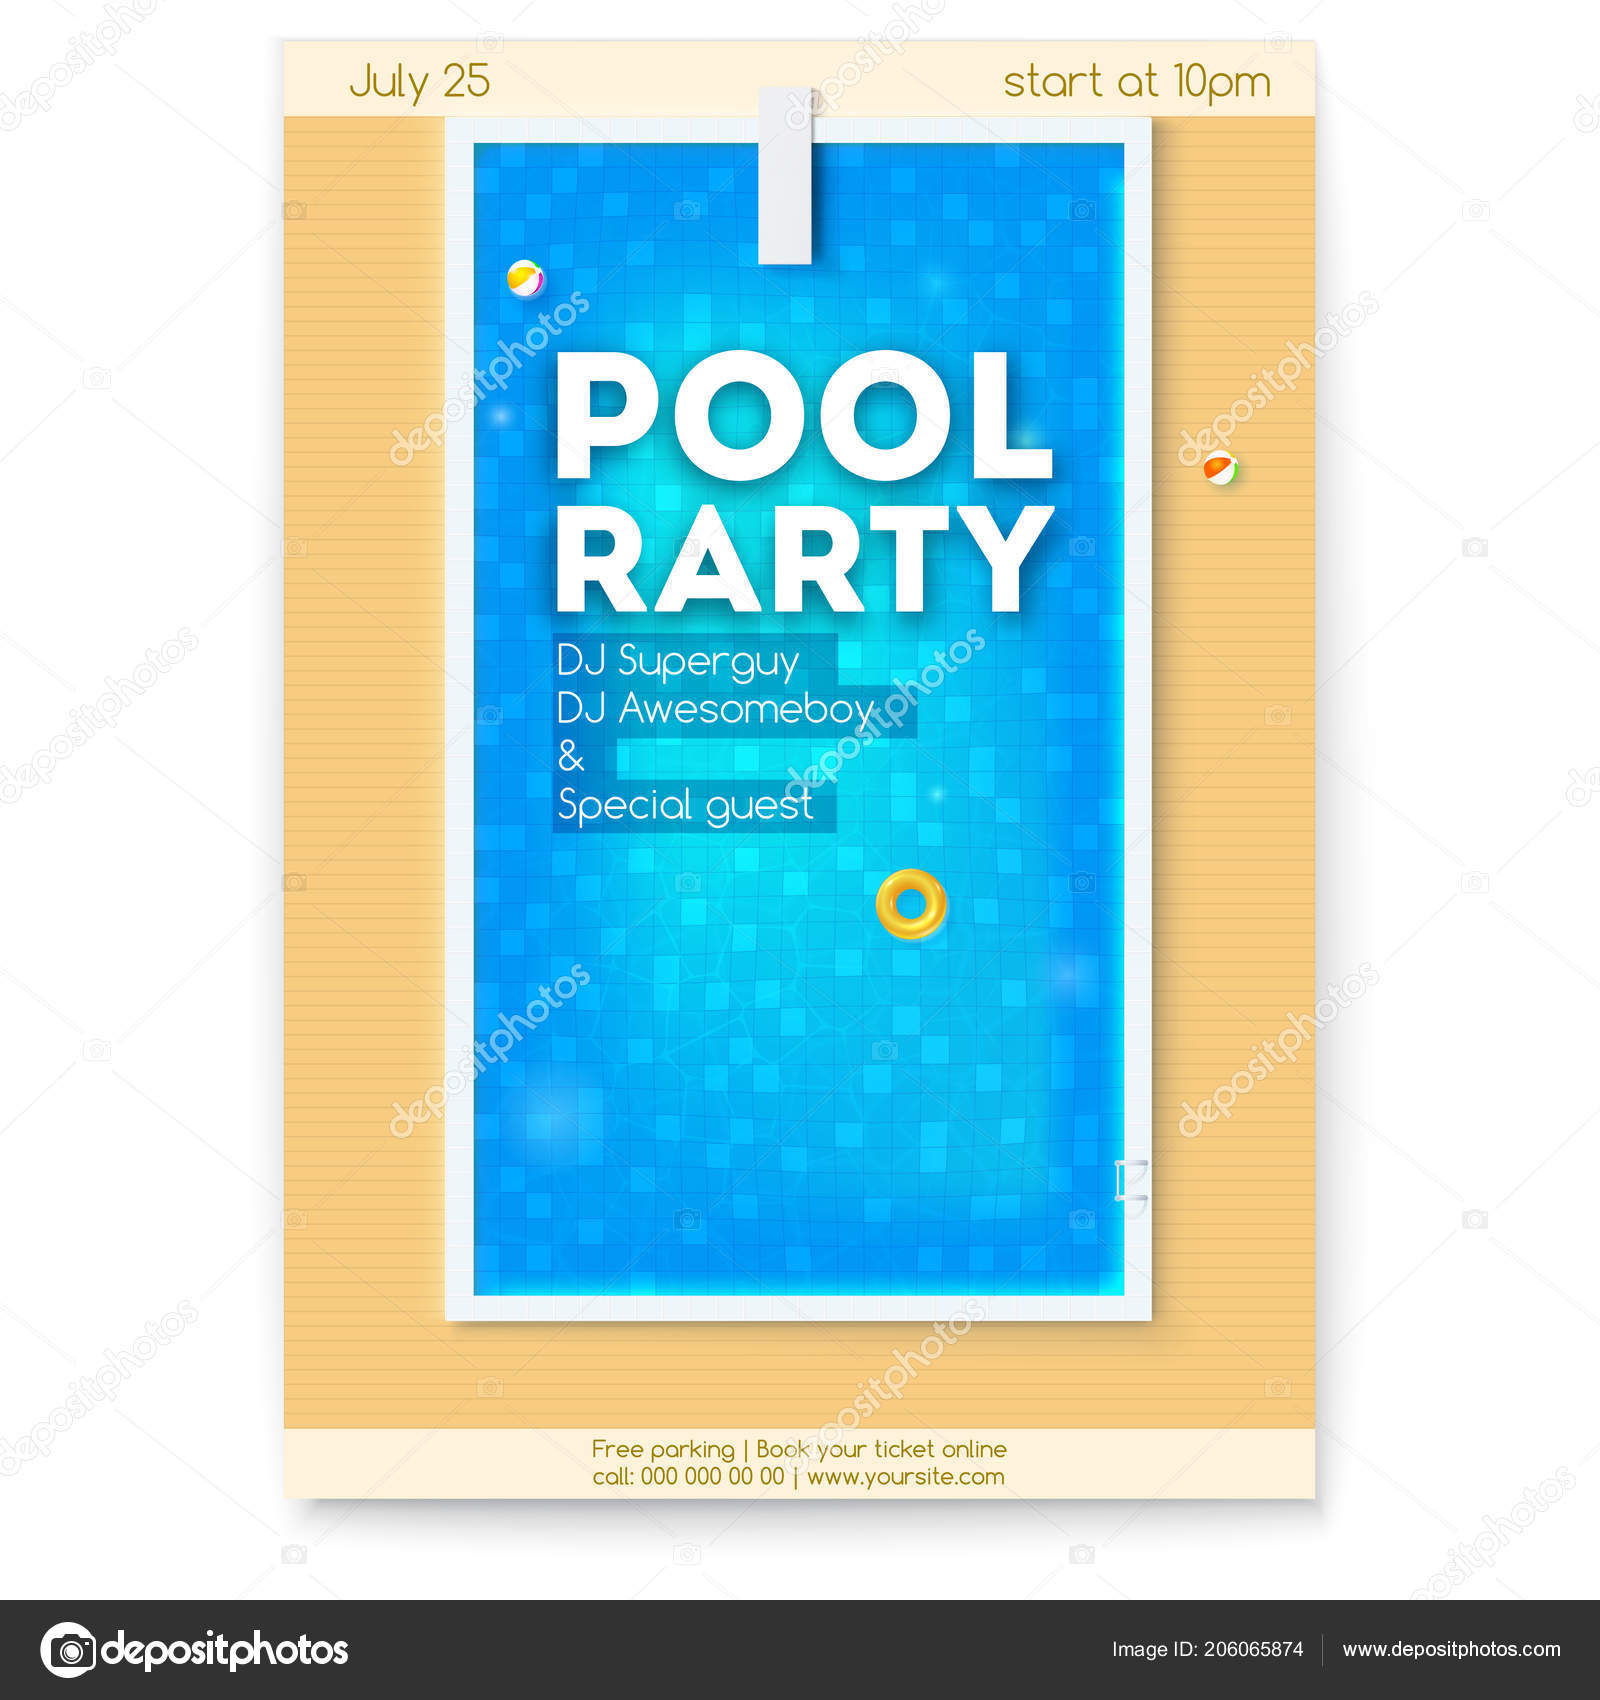 Book Cover Design Free Download Software ~ Summer party in swimming pool poster with design of text about